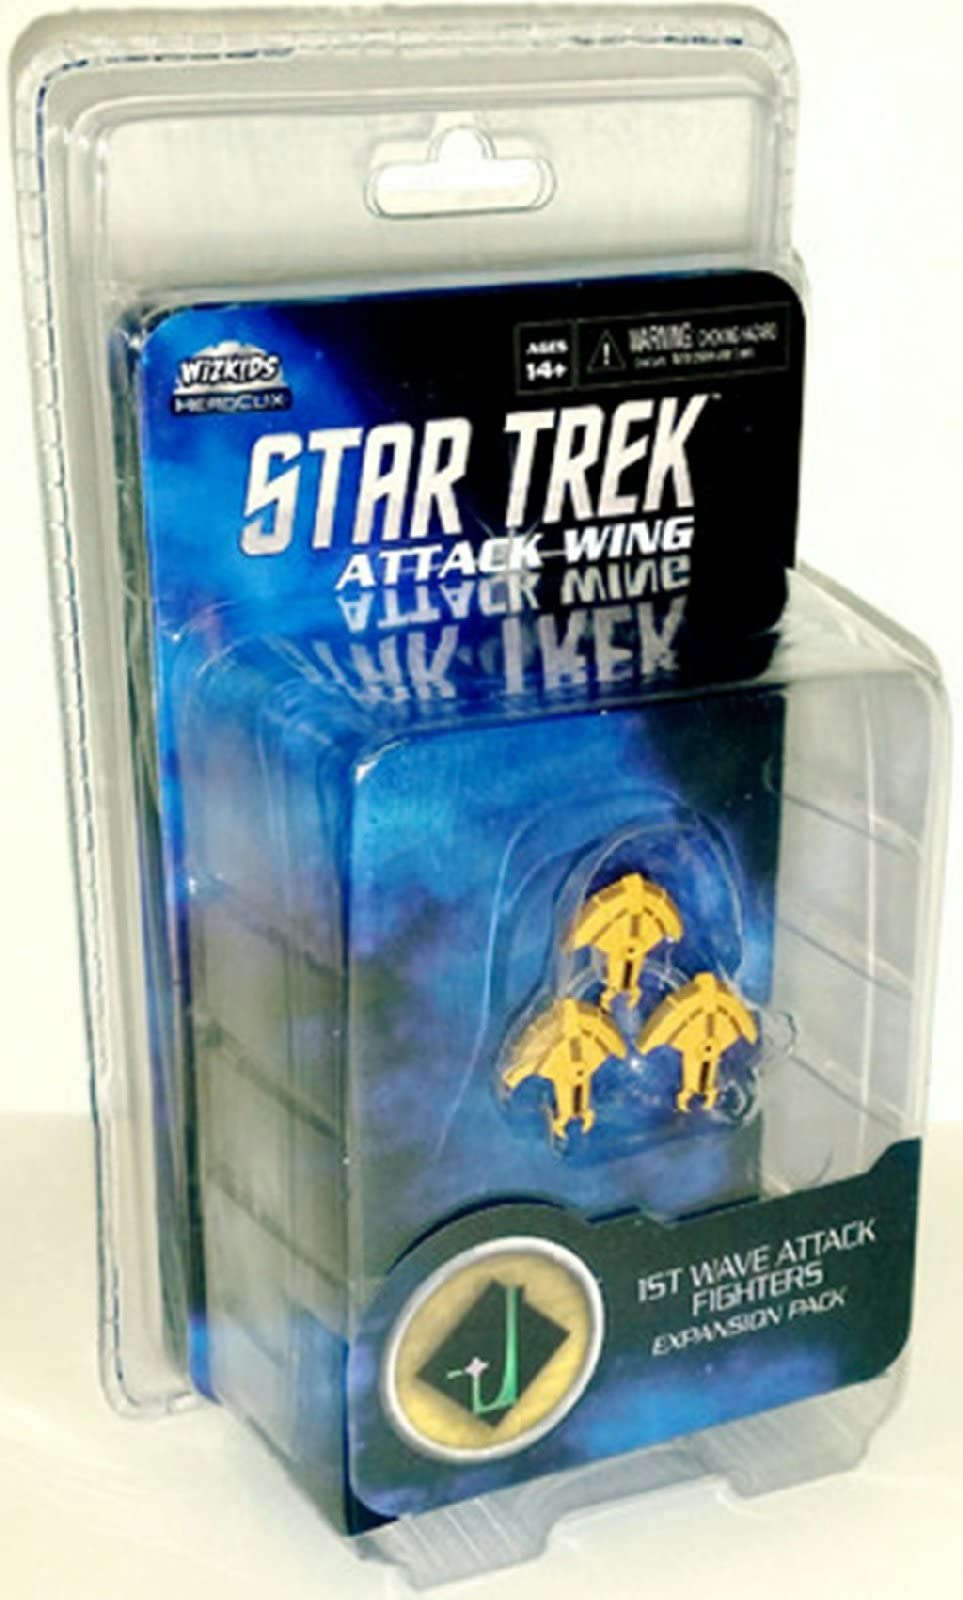 Star Trek Attack Wing Wave 11 Fighter Squadron 6 Expansion Pack WizKids Games